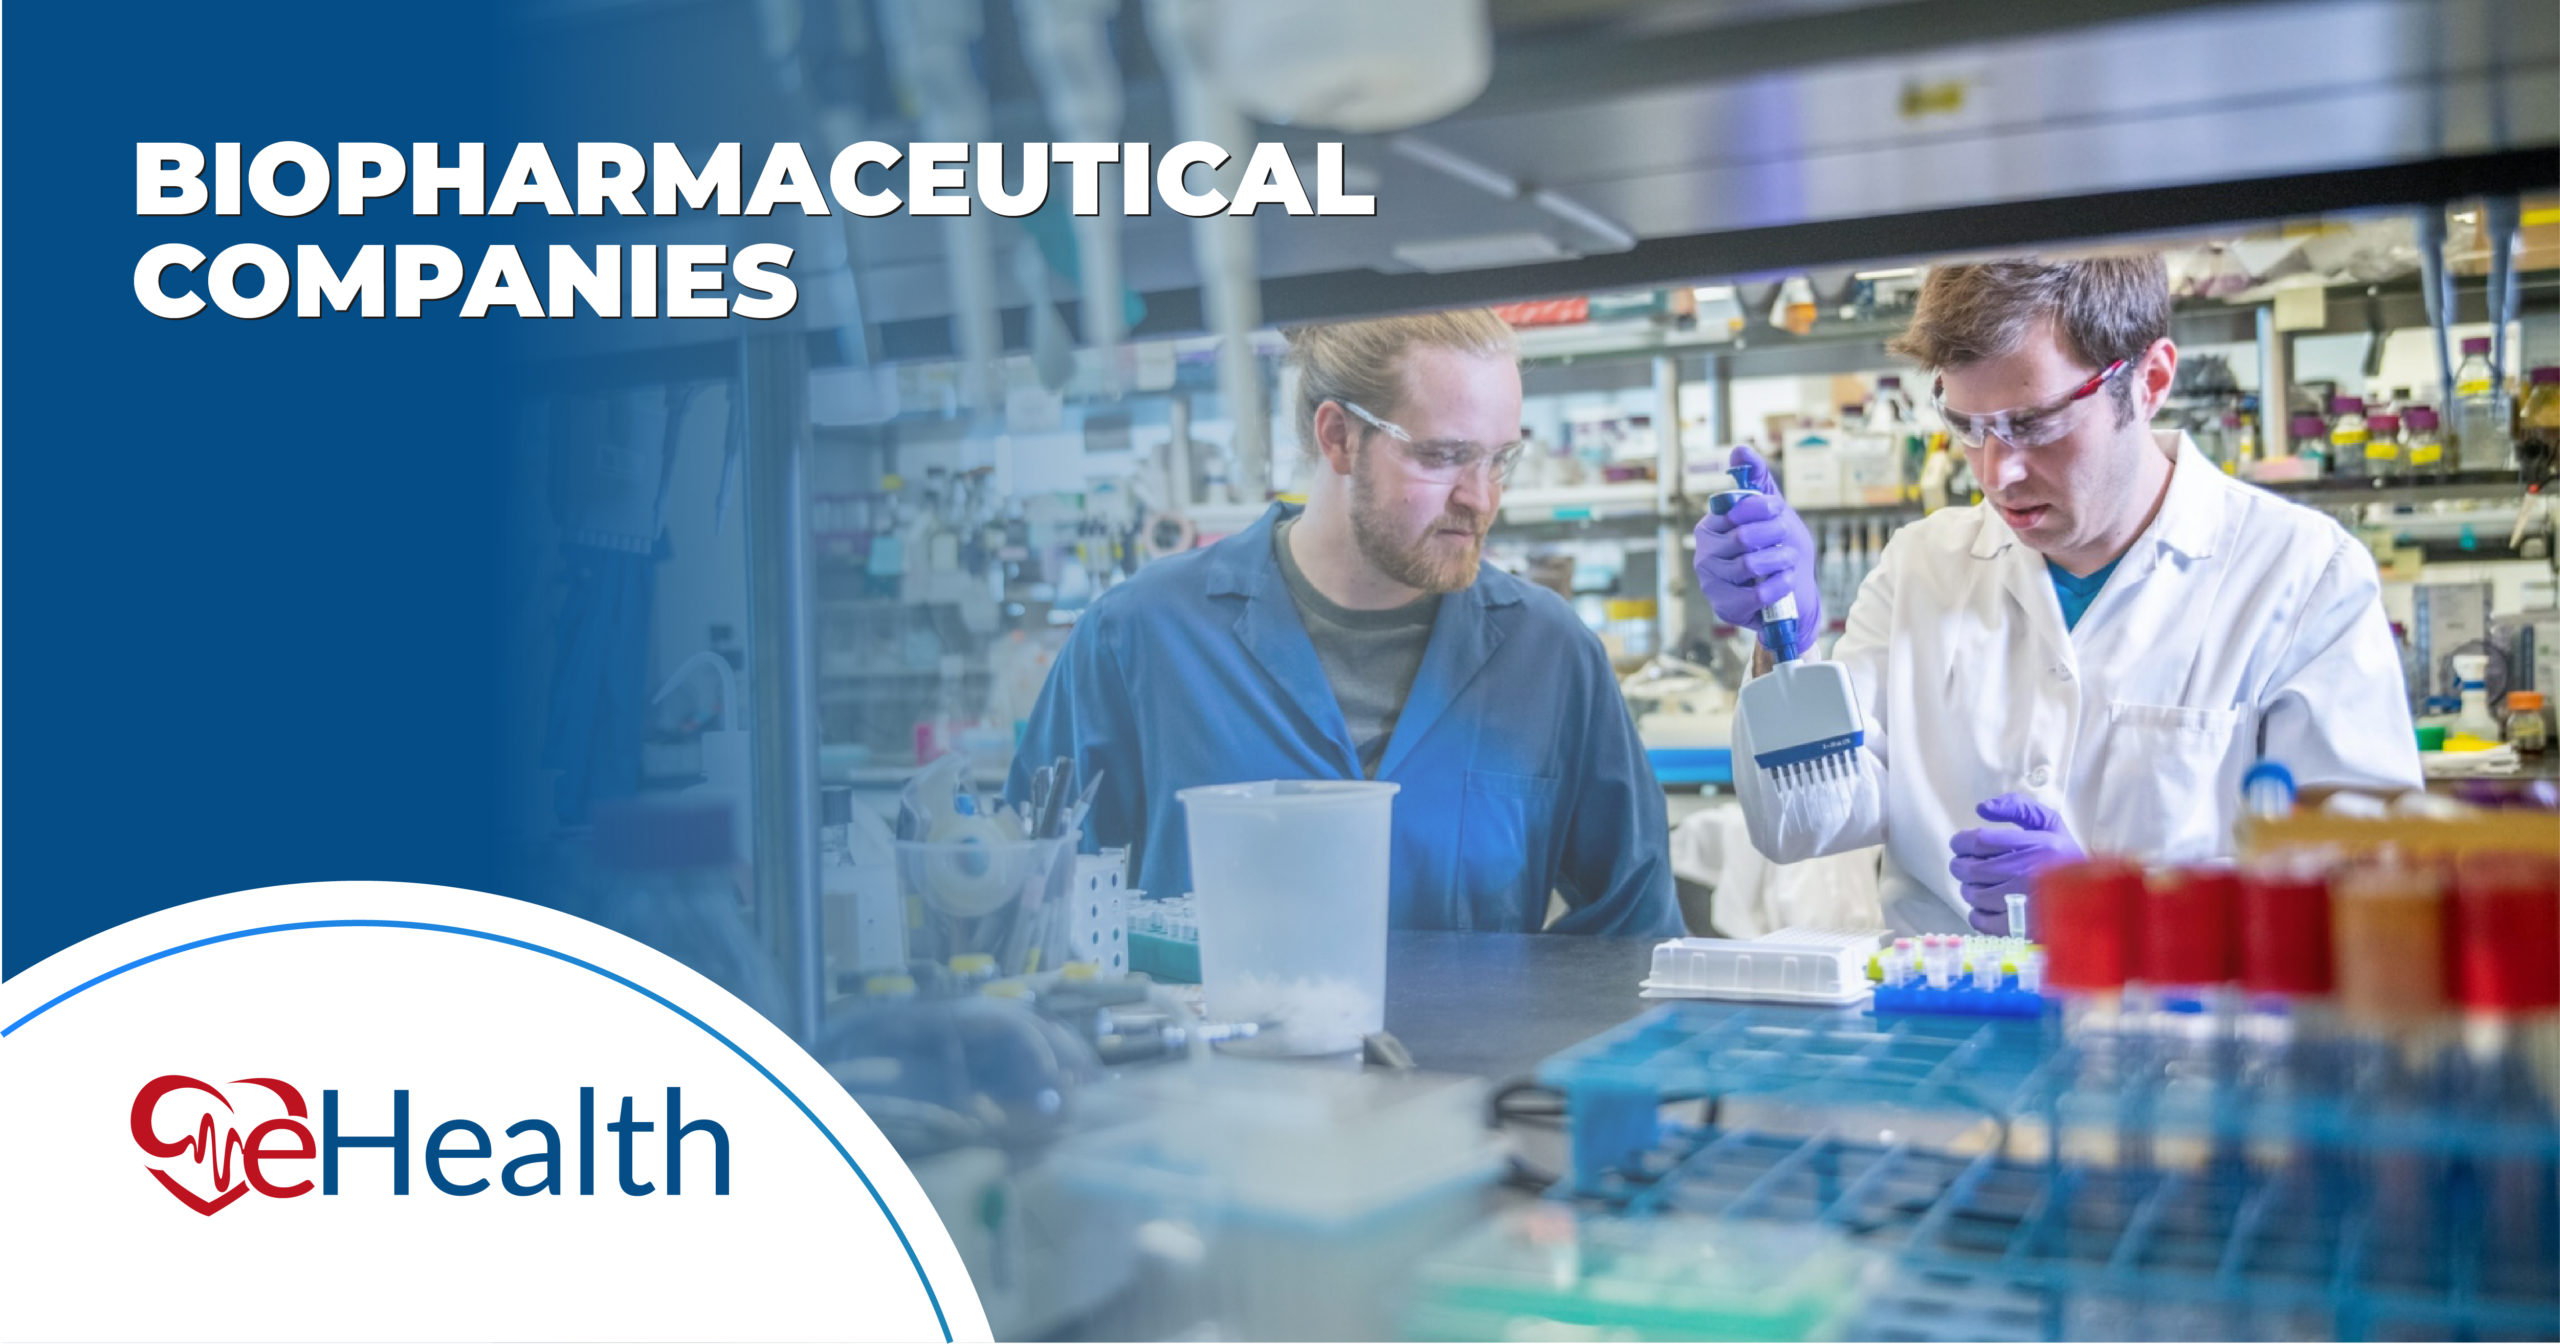 Discover Top 6 Biopharmaceutical Companies